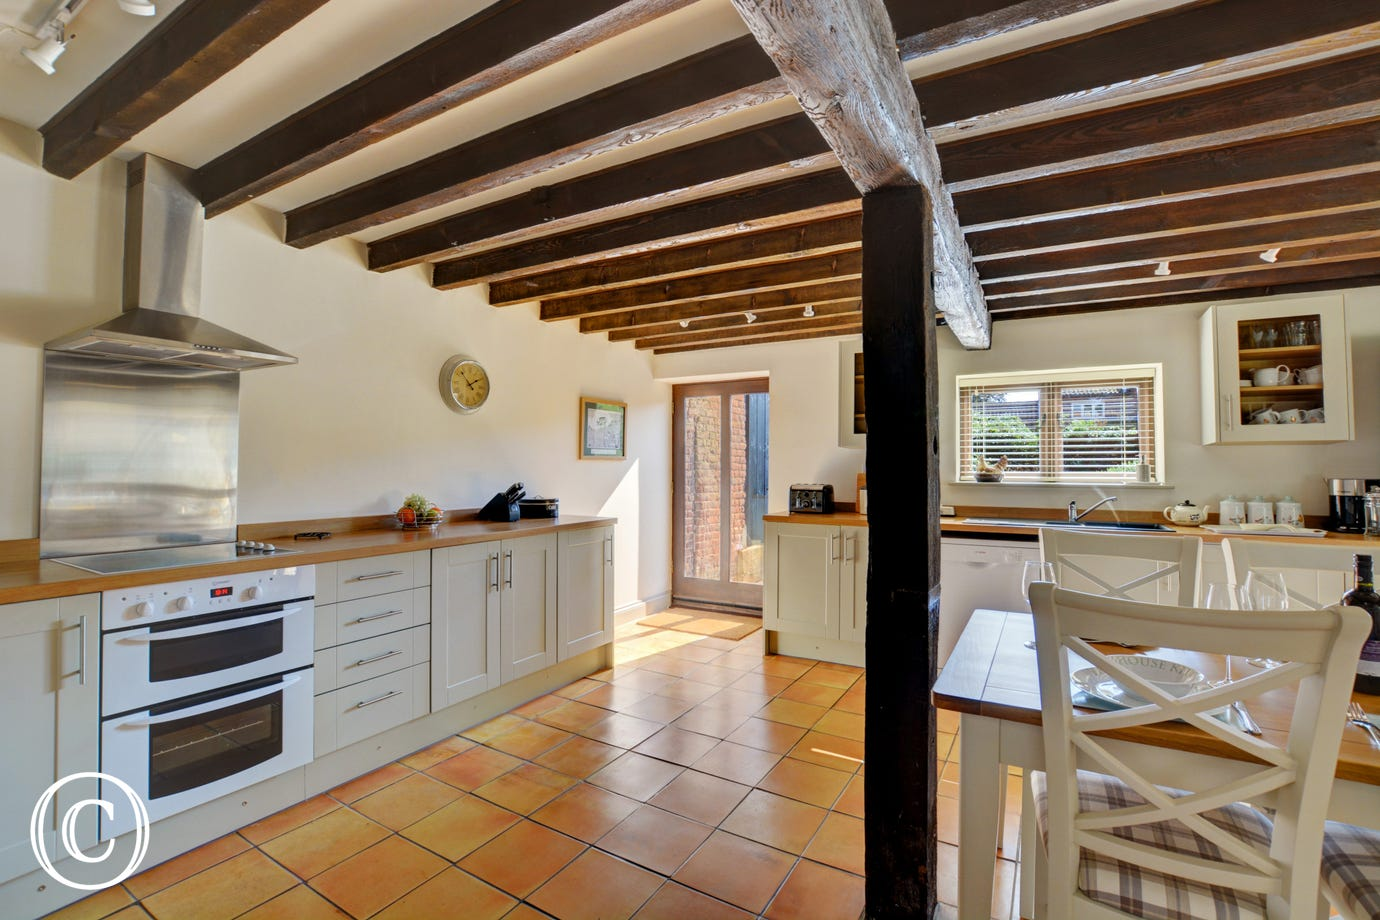 Rustic open beams in the well equipped kitchen